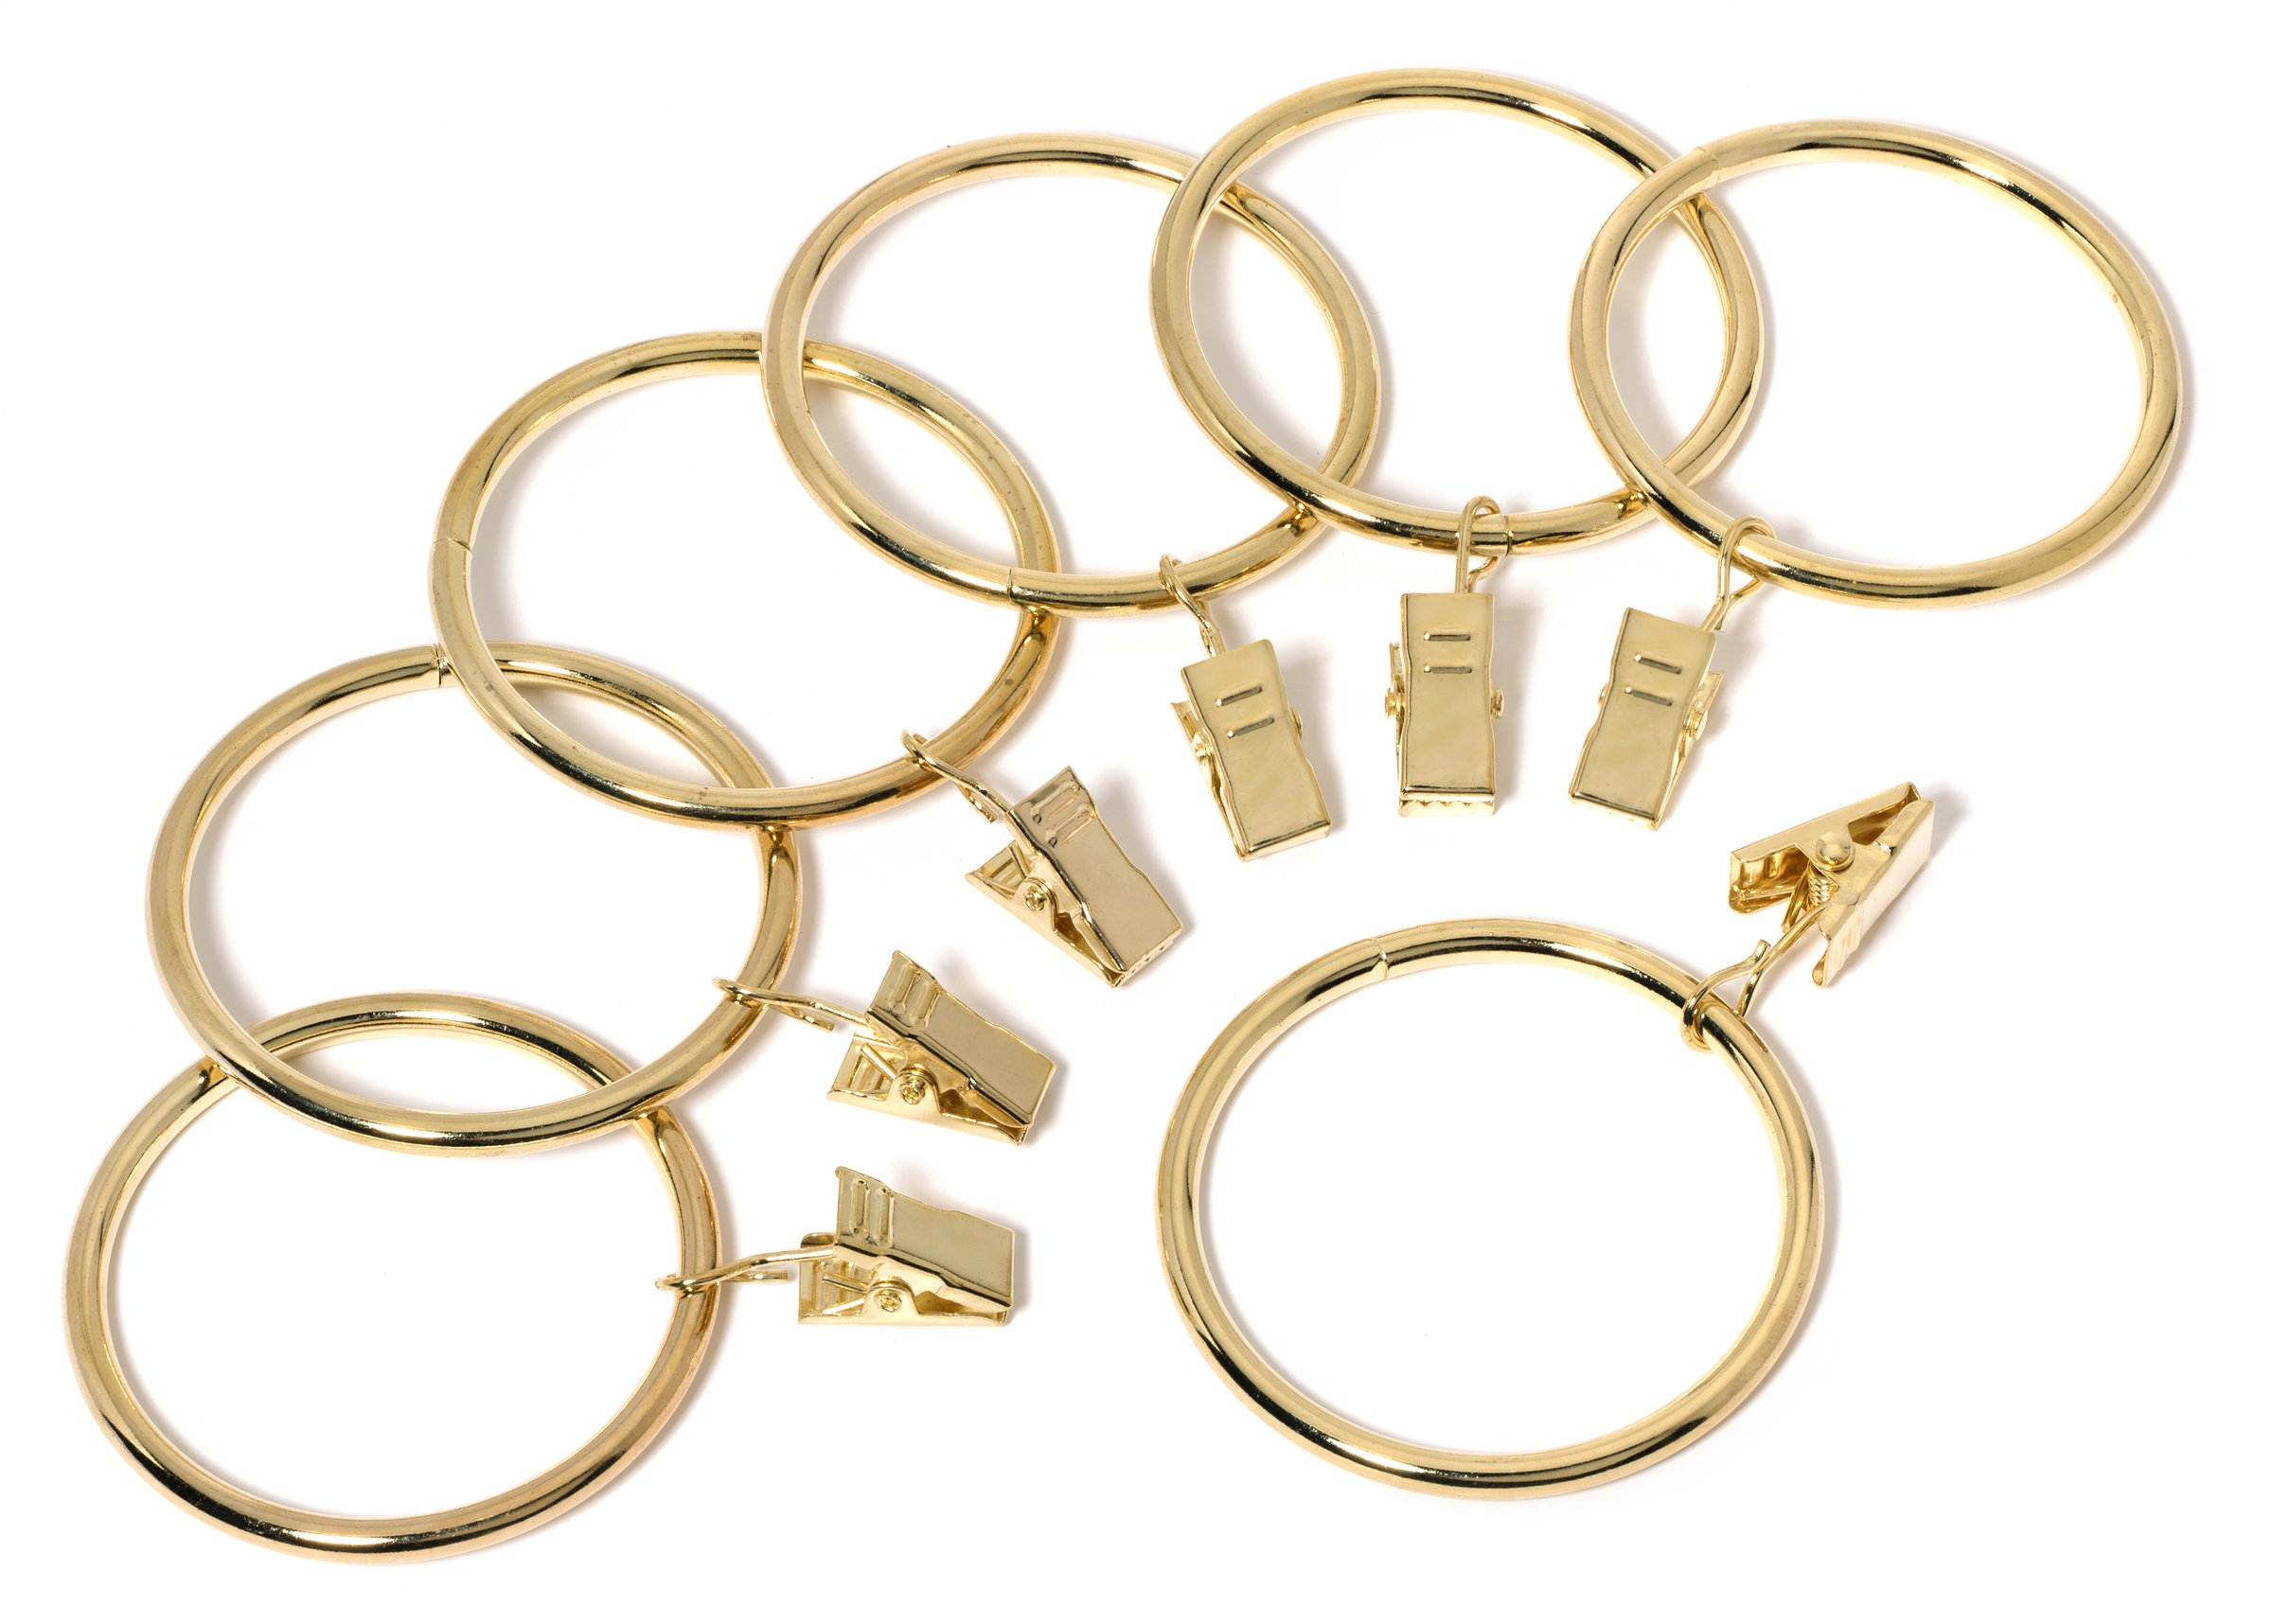 Perfect Order Iron Metal Curtain Clip Rings 2 Inch Interior Diameter (20, Gold)